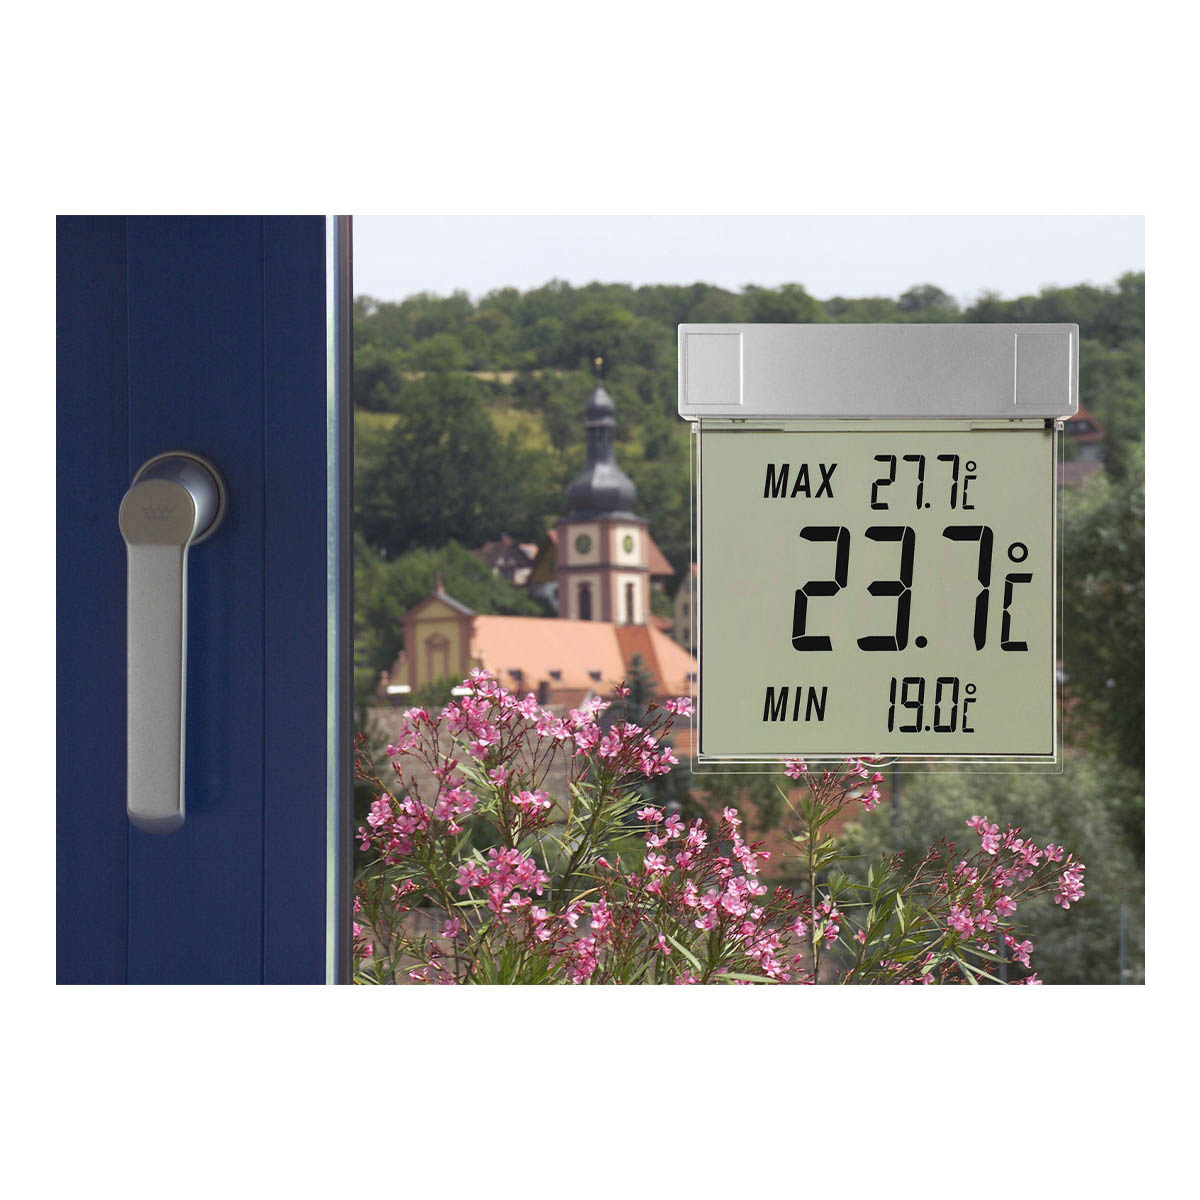 30-1025-digitales-fensterthermometer-vision-anwendung1-1200x1200px.jpg